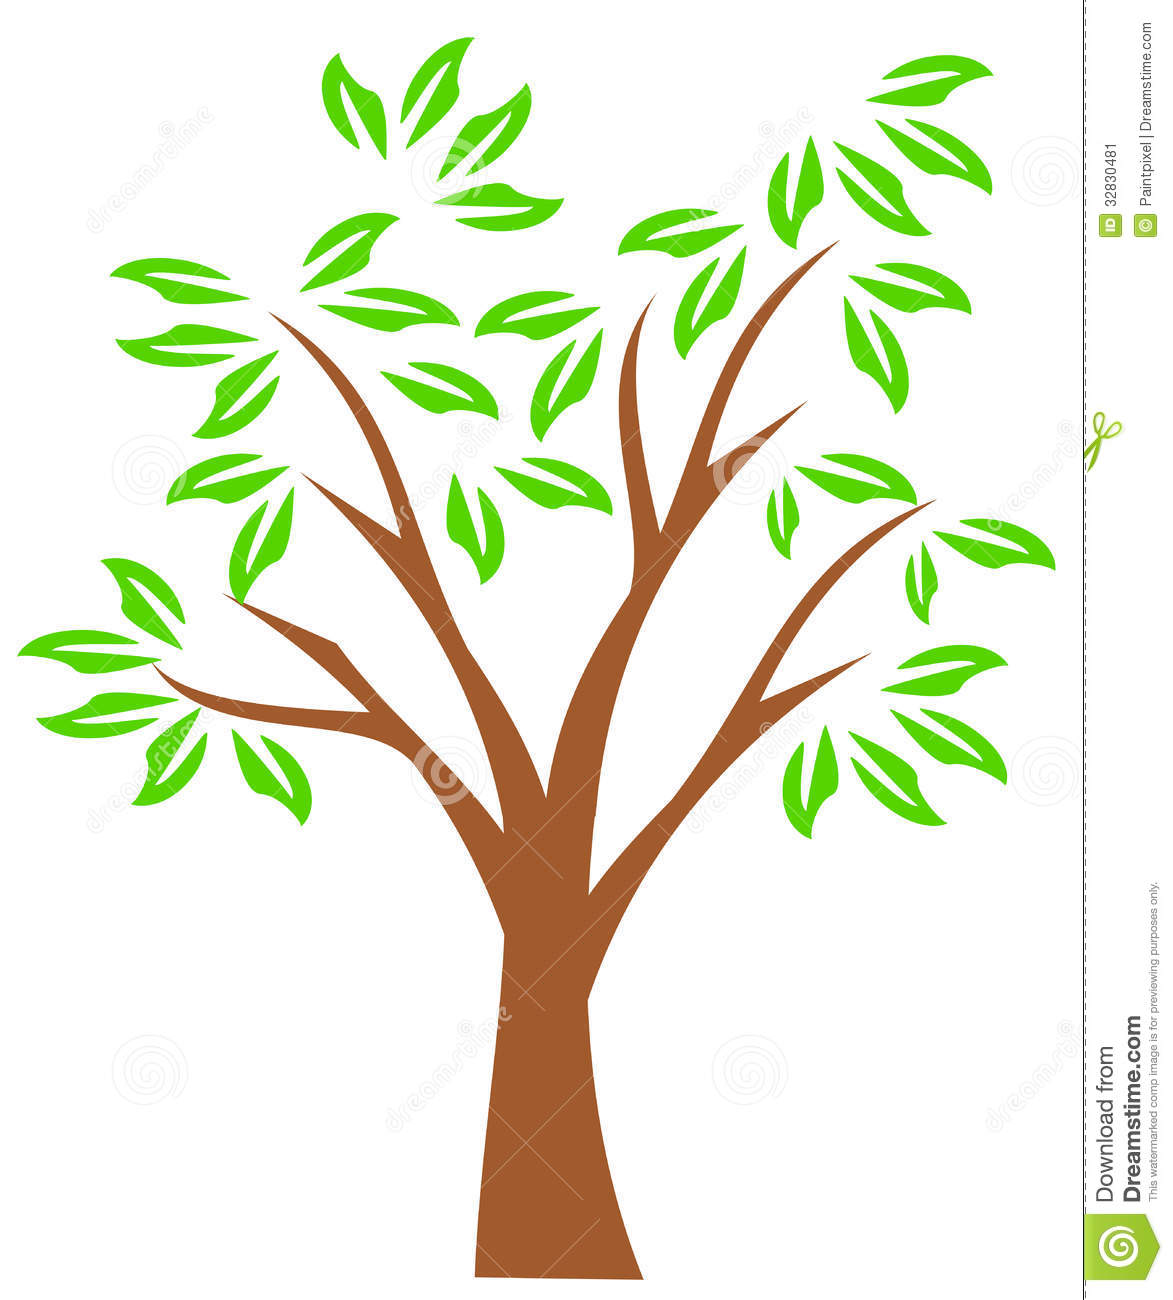 Clip Art Family Tree Outline on Whimsical Tree Clip Art Free